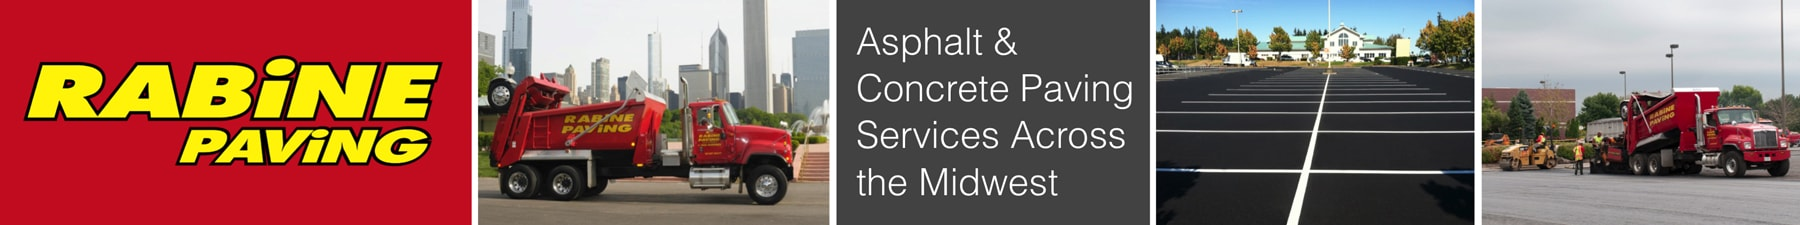 Chicagoland Paving Services